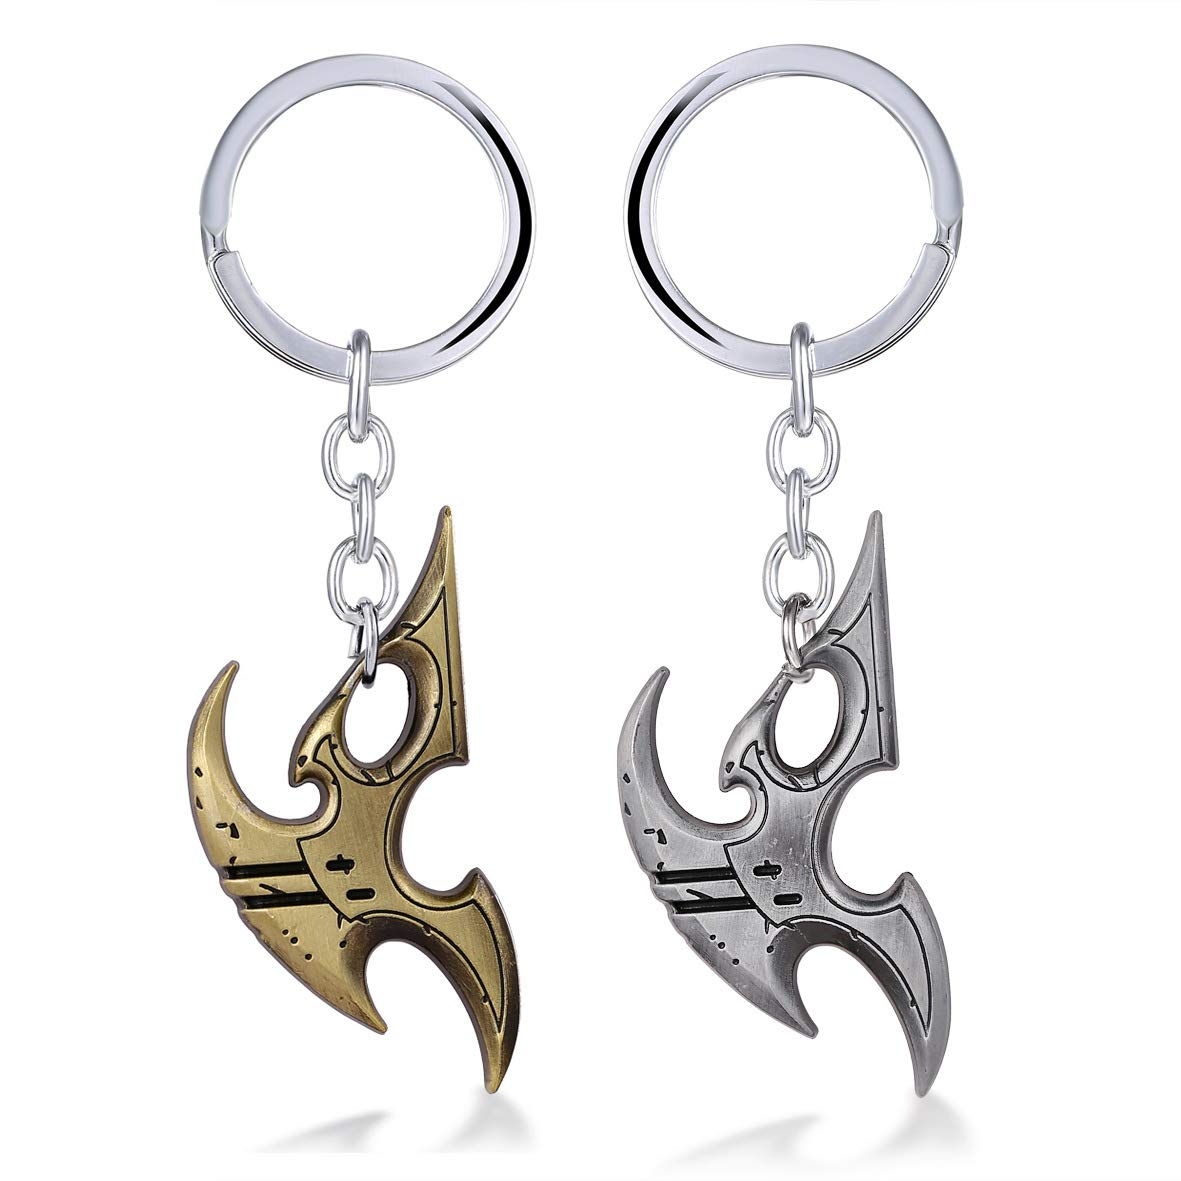 Amazon.com : Key Chains - Movie Theme Game Jewelry Starcraft ...